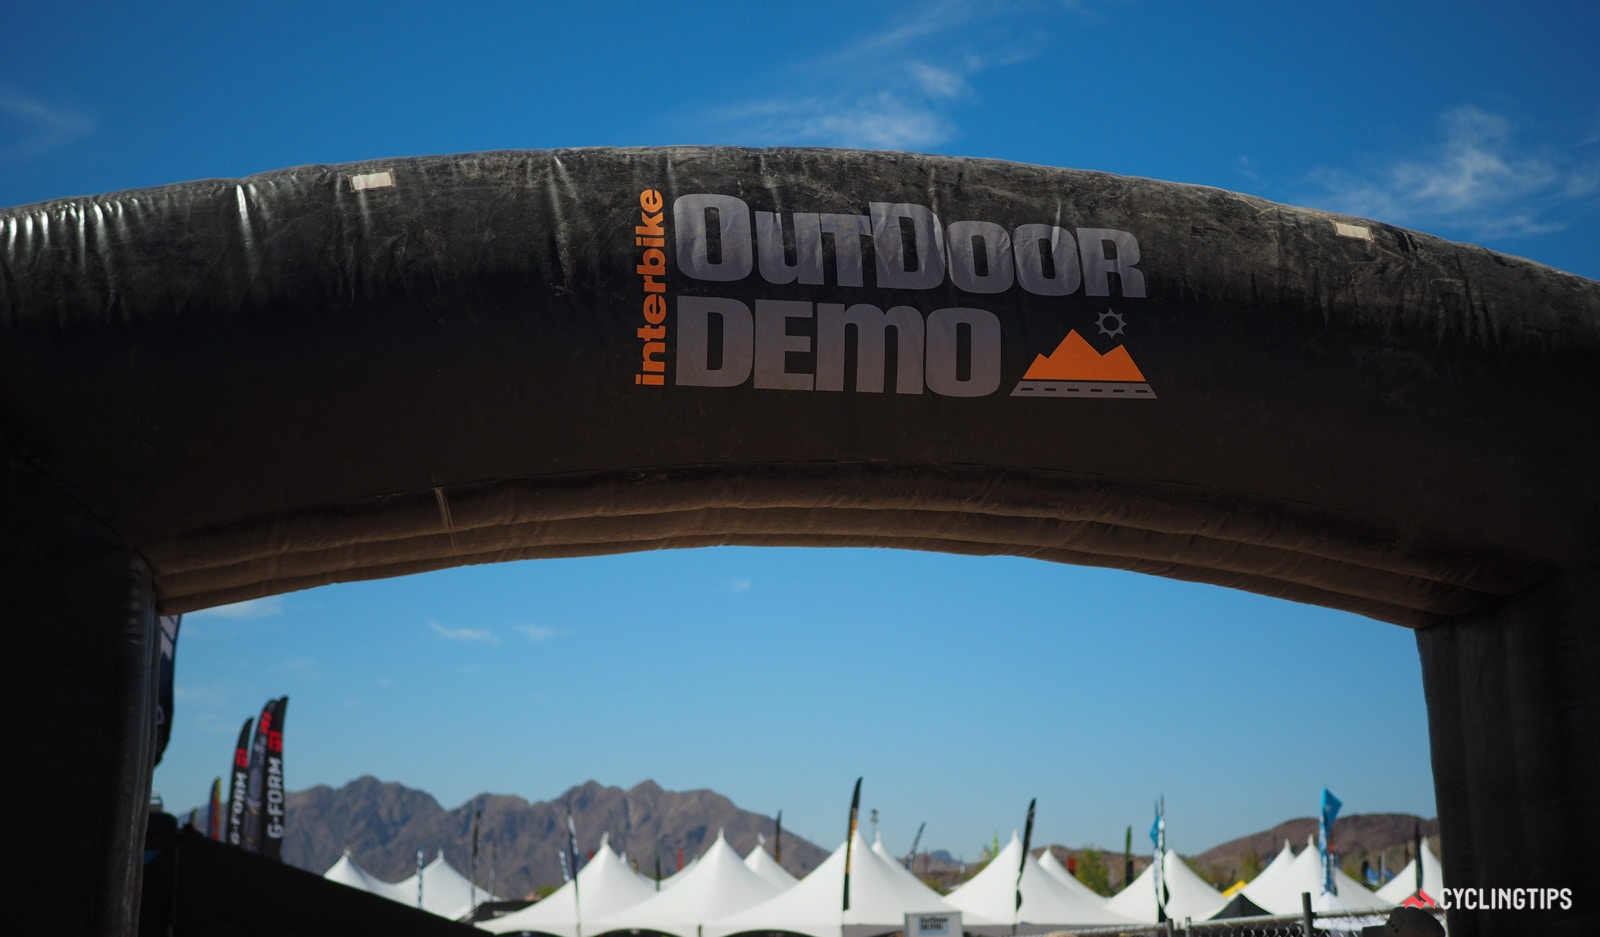 Interbike full tech coverage, Outdoor Demo